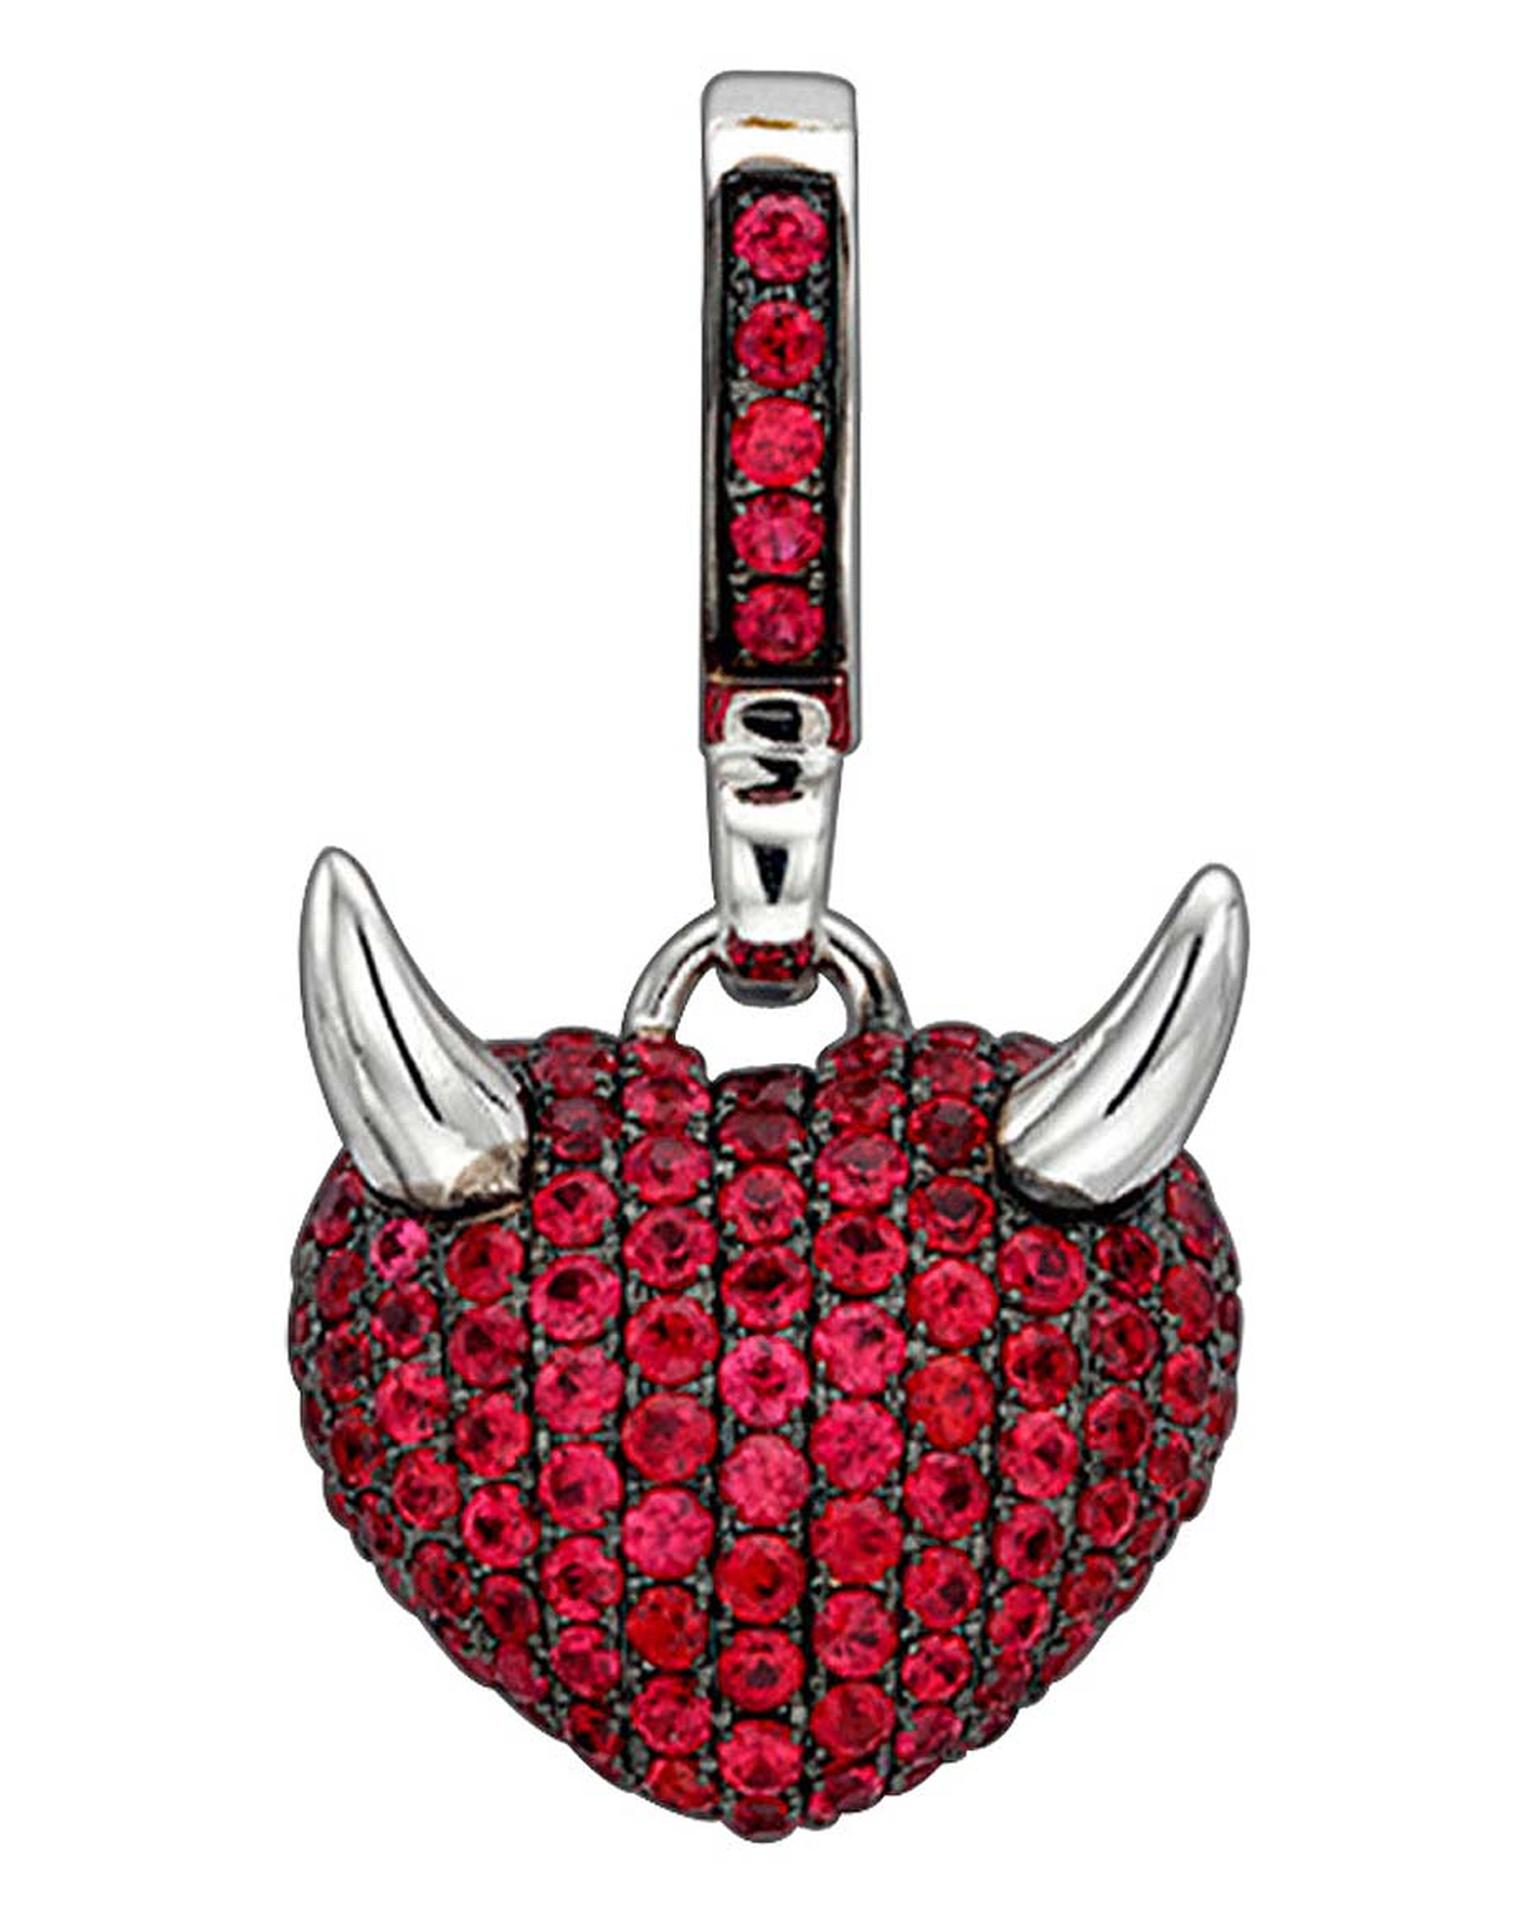 The Theo Fennell Art Devil white gold pendant charm is set with 1.75ct pavé rubies. £2,650.